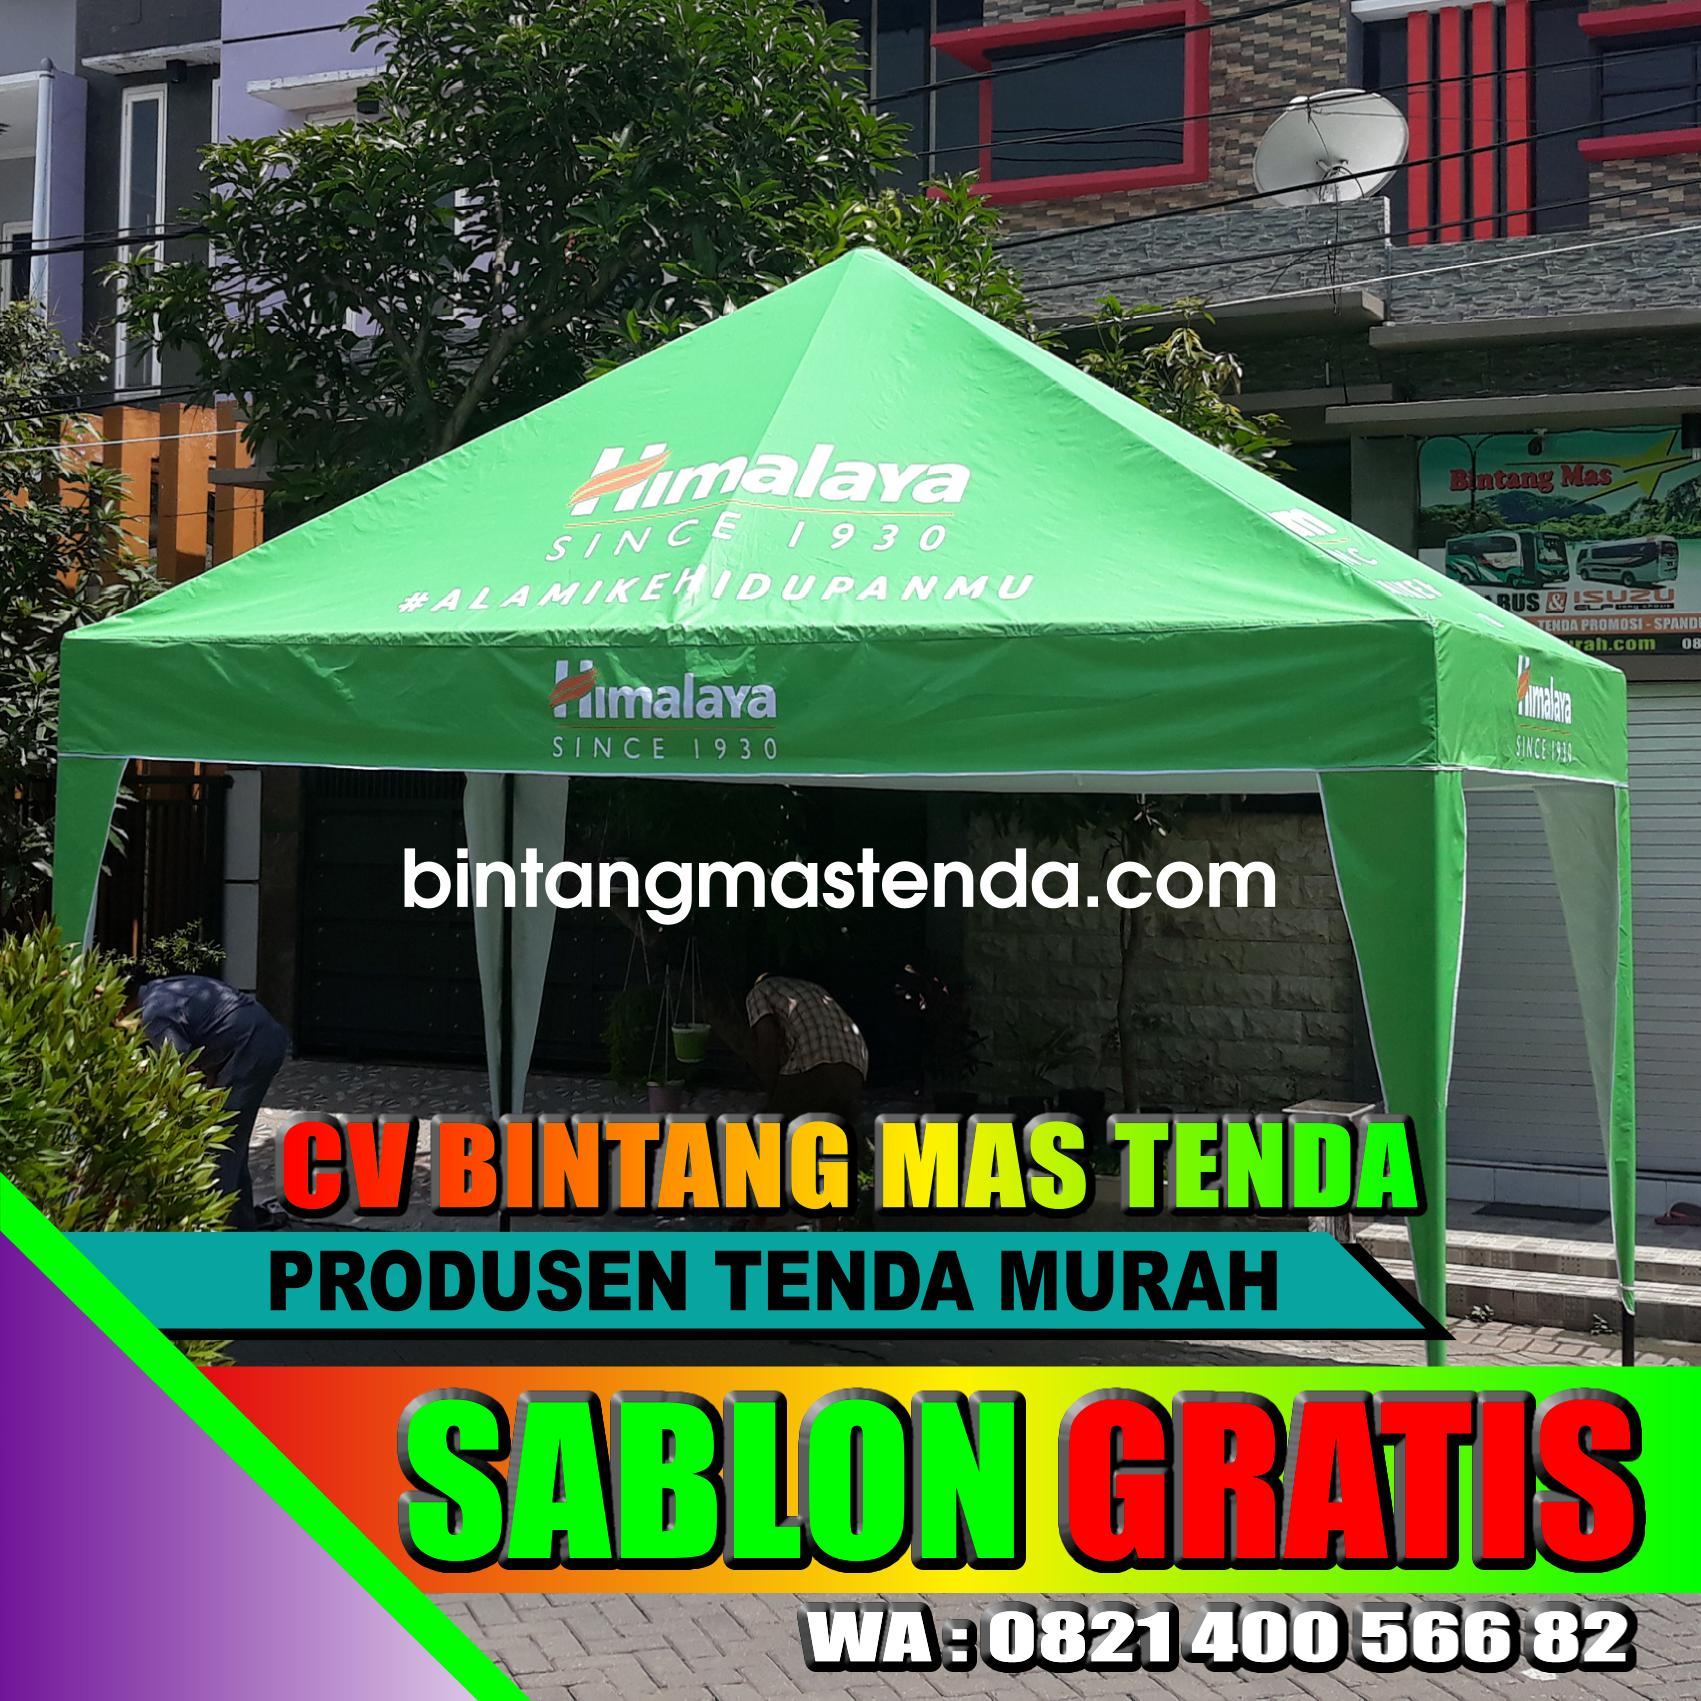 JUAL TENDA DISPLAY SURABAYA